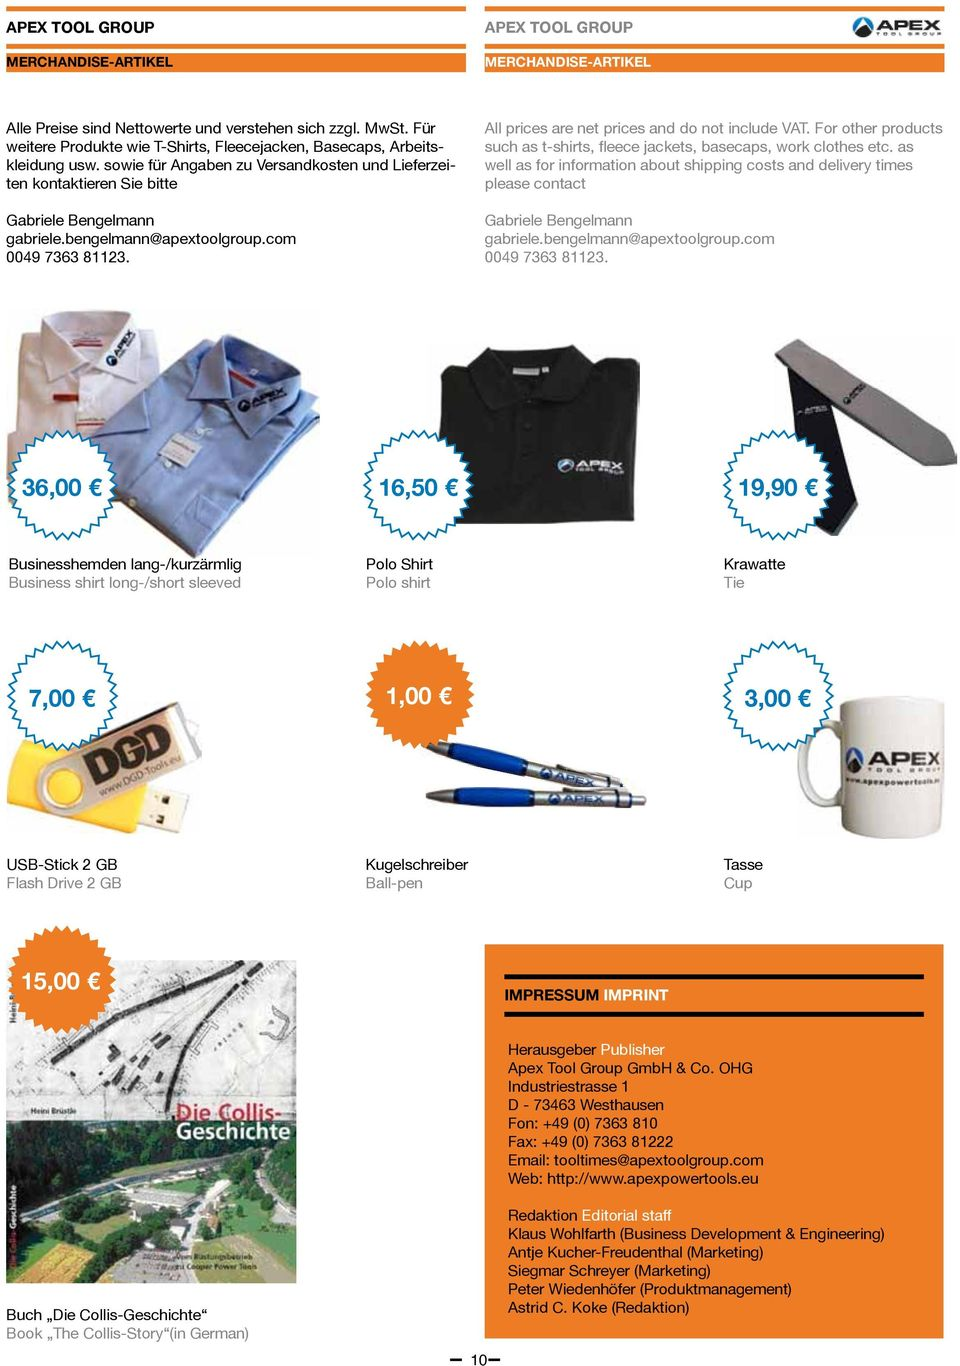 bengelmann@apextoolgroup.com 0049 7363 81123. All prices are net prices and do not include VAT. For other products such as t-shirts, fleece jackets, basecaps, work clothes etc.